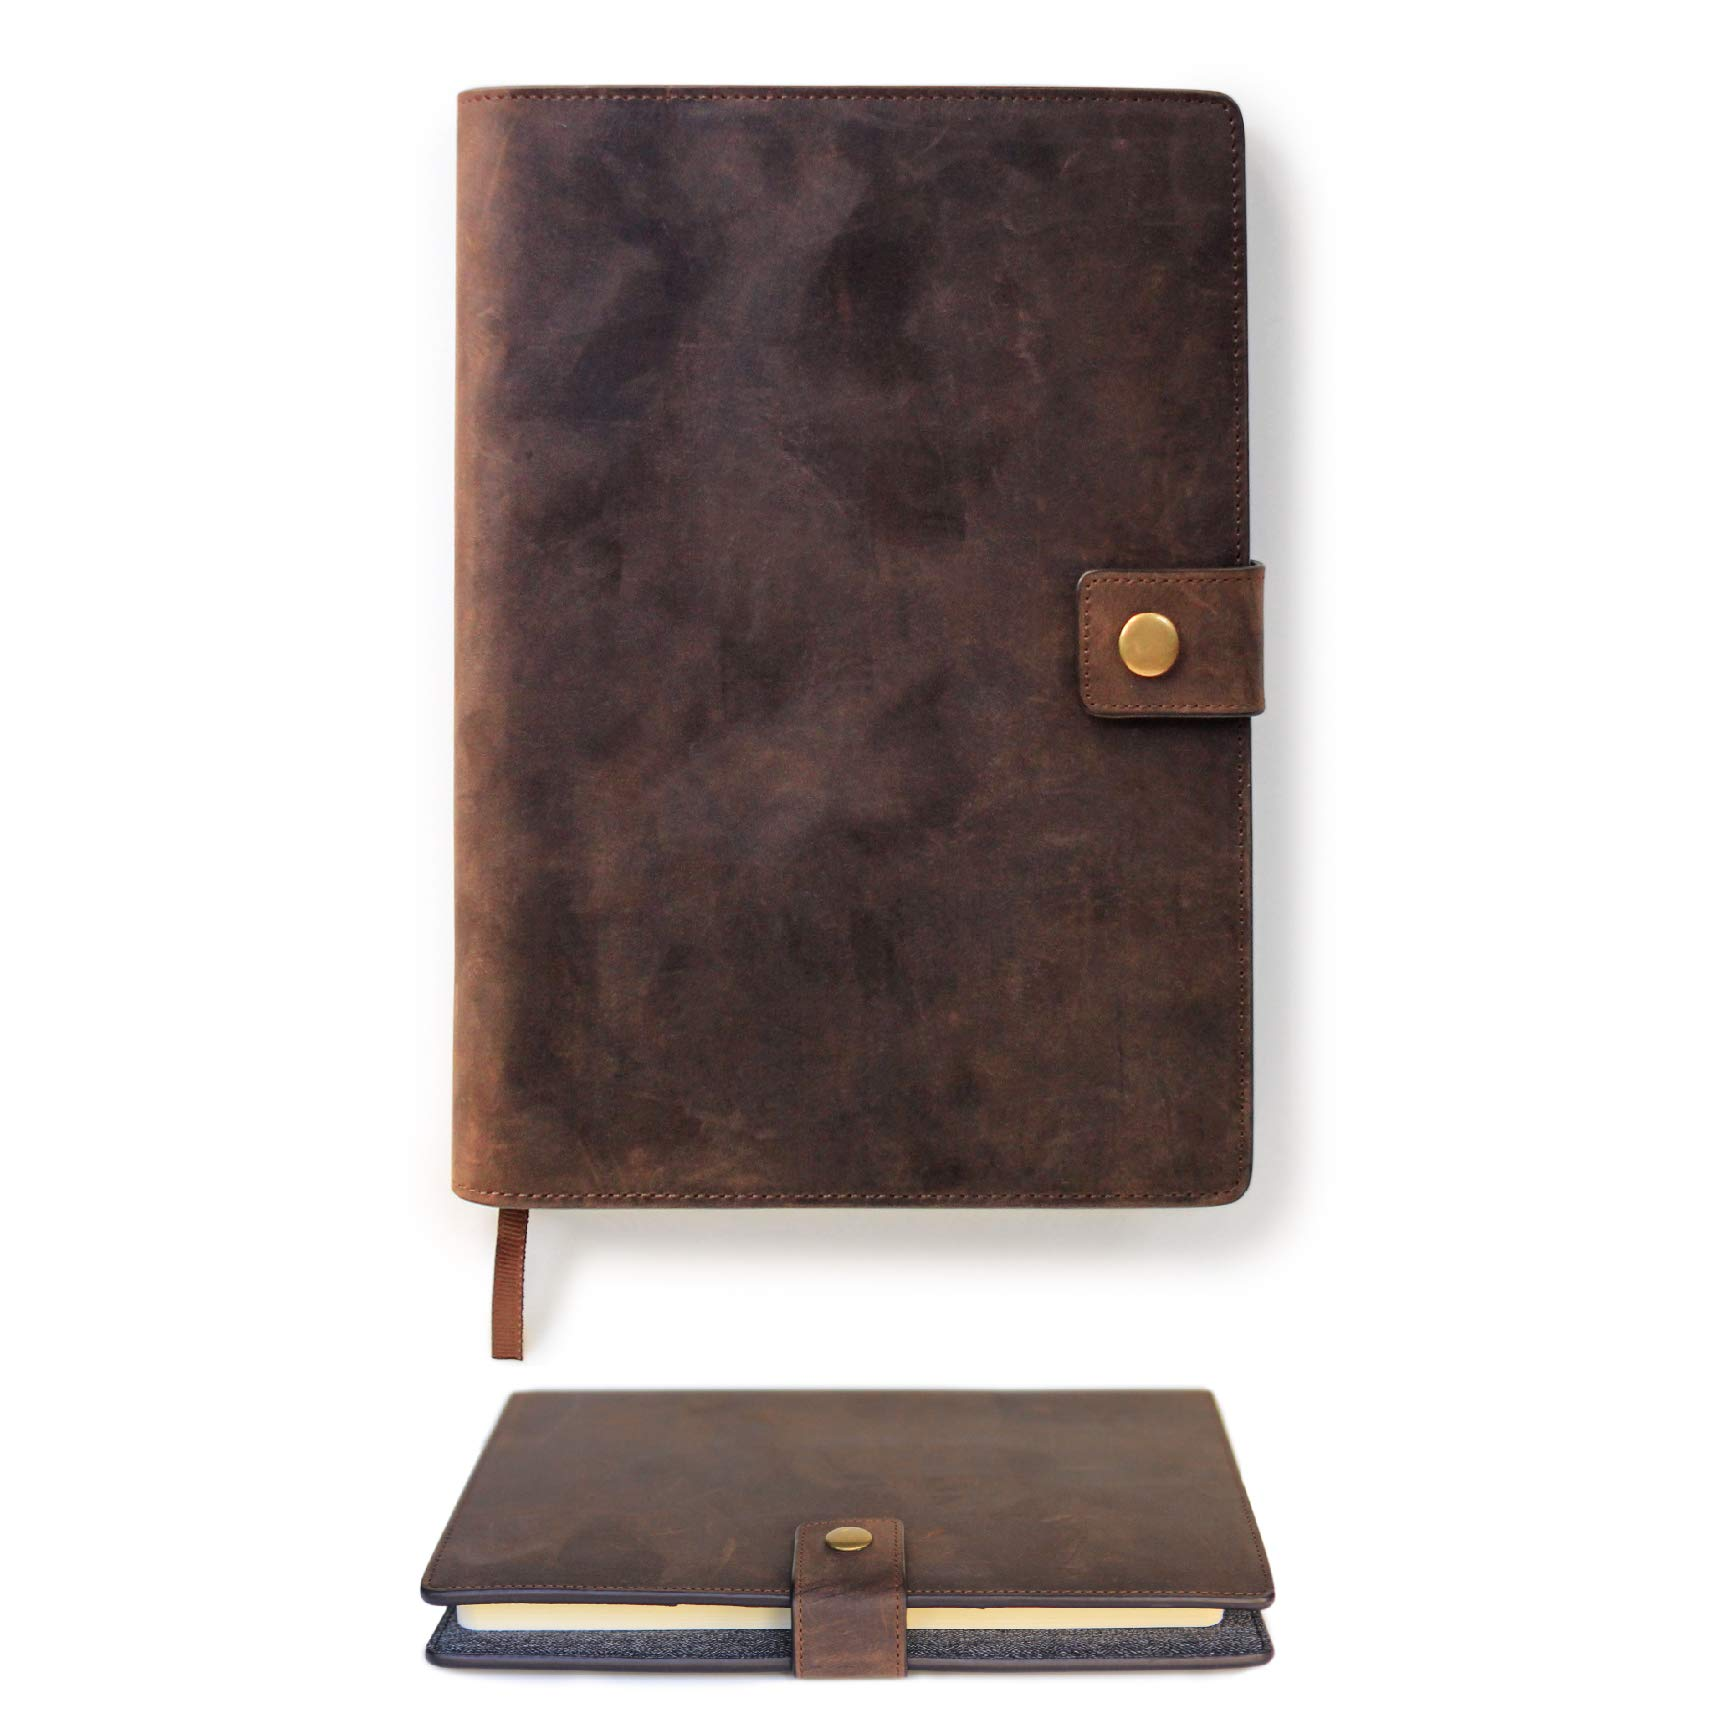 CASE ELEGANCE Full Grain Premium Leather Refillable Journal Cover with A5 Lined Notebook, Pen Loop, Card Slots, & Brass Snap by CASE ELEGANCE (Image #1)